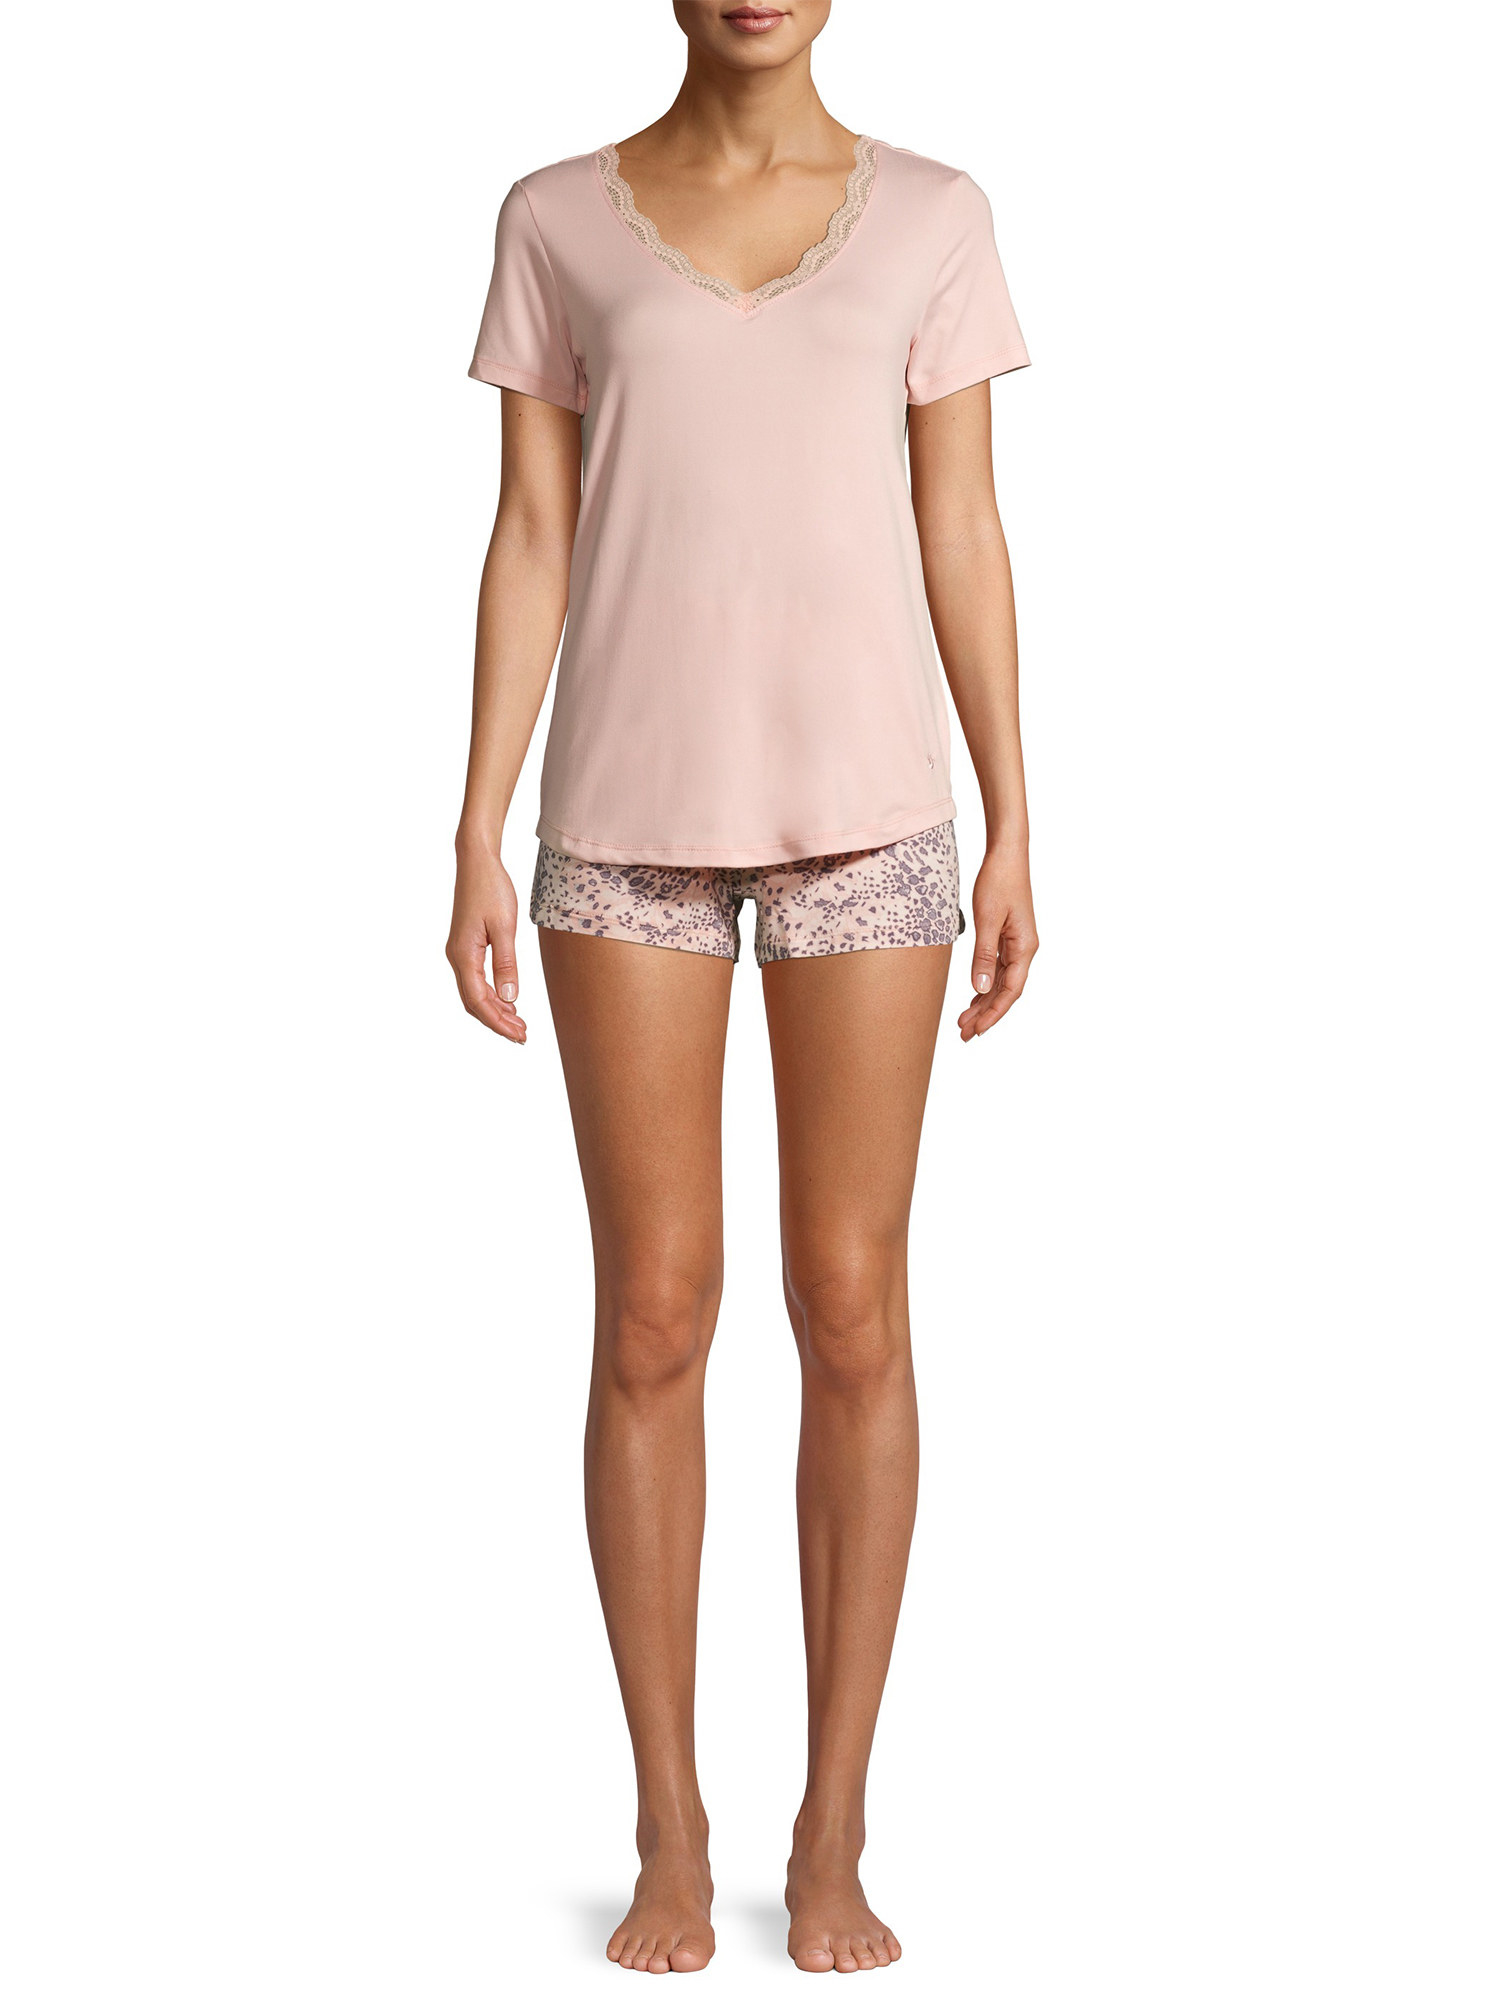 A model in pink t-shirt and pink patterned shorts